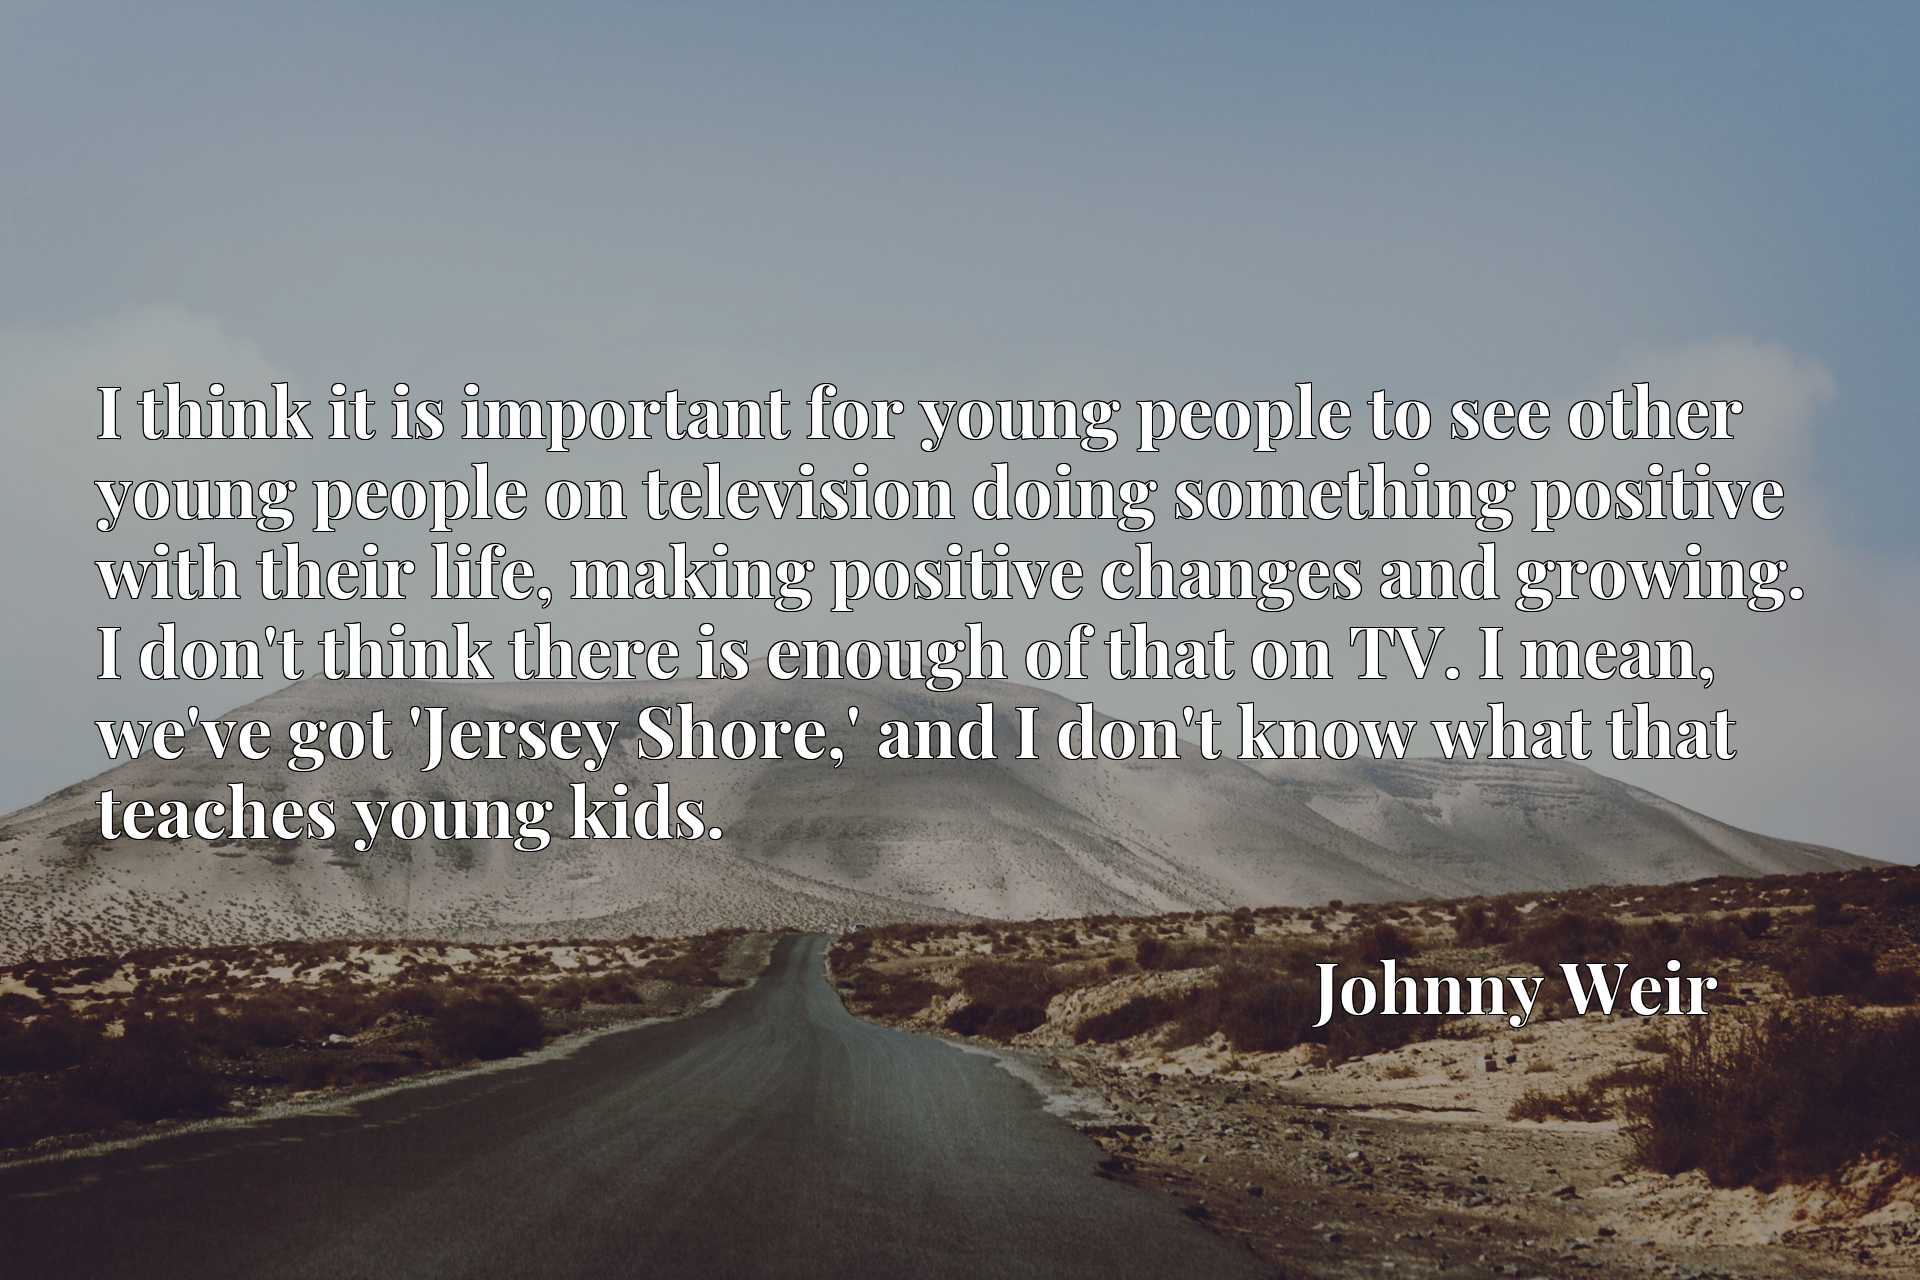 I think it is important for young people to see other young people on television doing something positive with their life, making positive changes and growing. I don't think there is enough of that on TV. I mean, we've got 'Jersey Shore,' and I don't know what that teaches young kids.